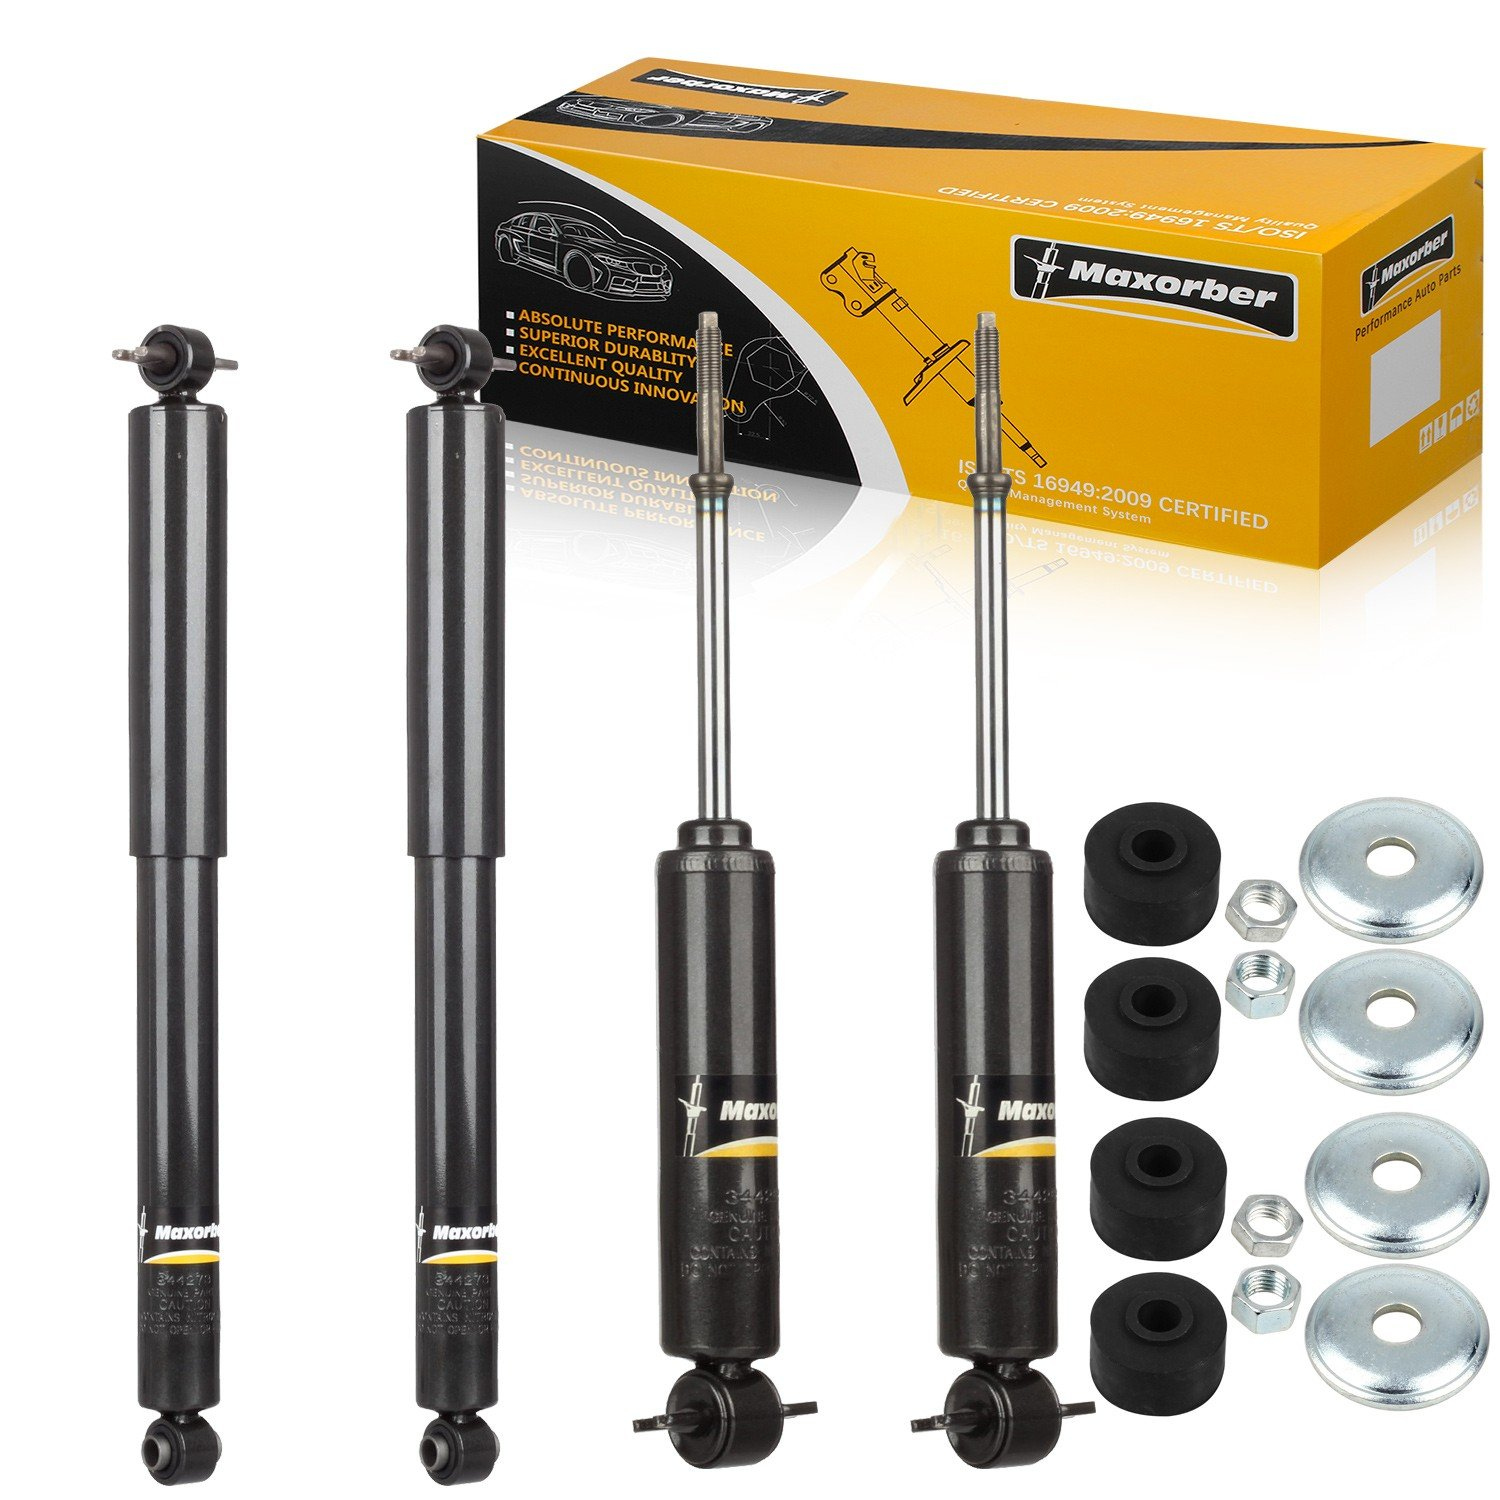 TUPARTS 4x Front Rear 344273 Struts Shocks Absorbers Fit for 1992-1999 Chevy C1500//C2500 Suburban,96-02 Chevy Express//GMC Savana 1500,95-00 Chevy Tahoe/&GMC Yukon,92-99 GMC C1500//GMC C2500 Suburban